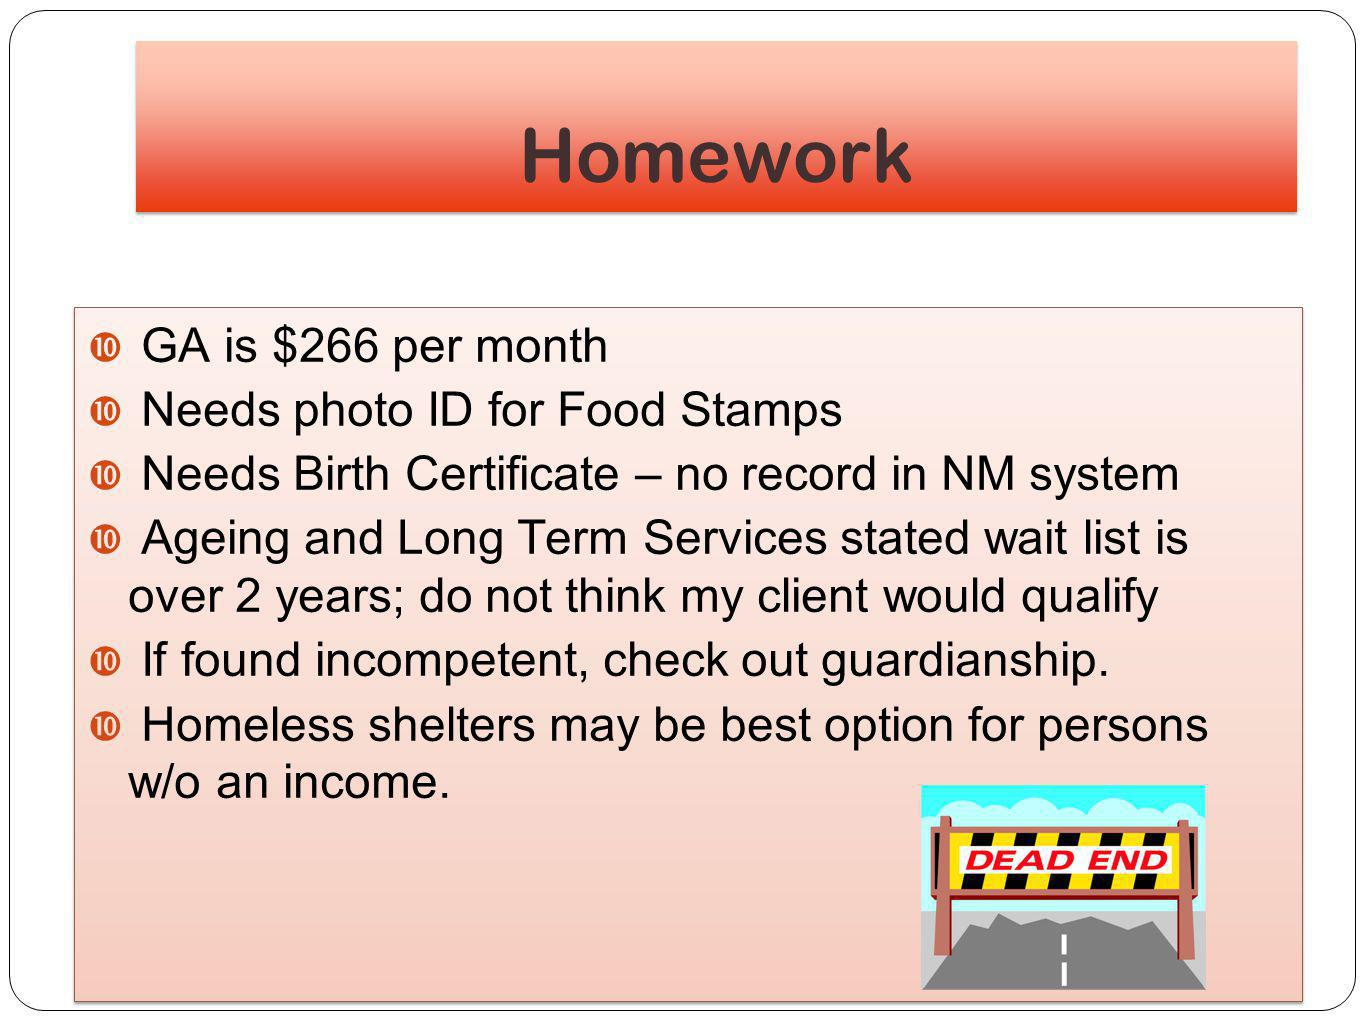 A homeless alcoholic patient with tb ppt download homework ga is 266 per month needs photo id for food stamps aiddatafo Images